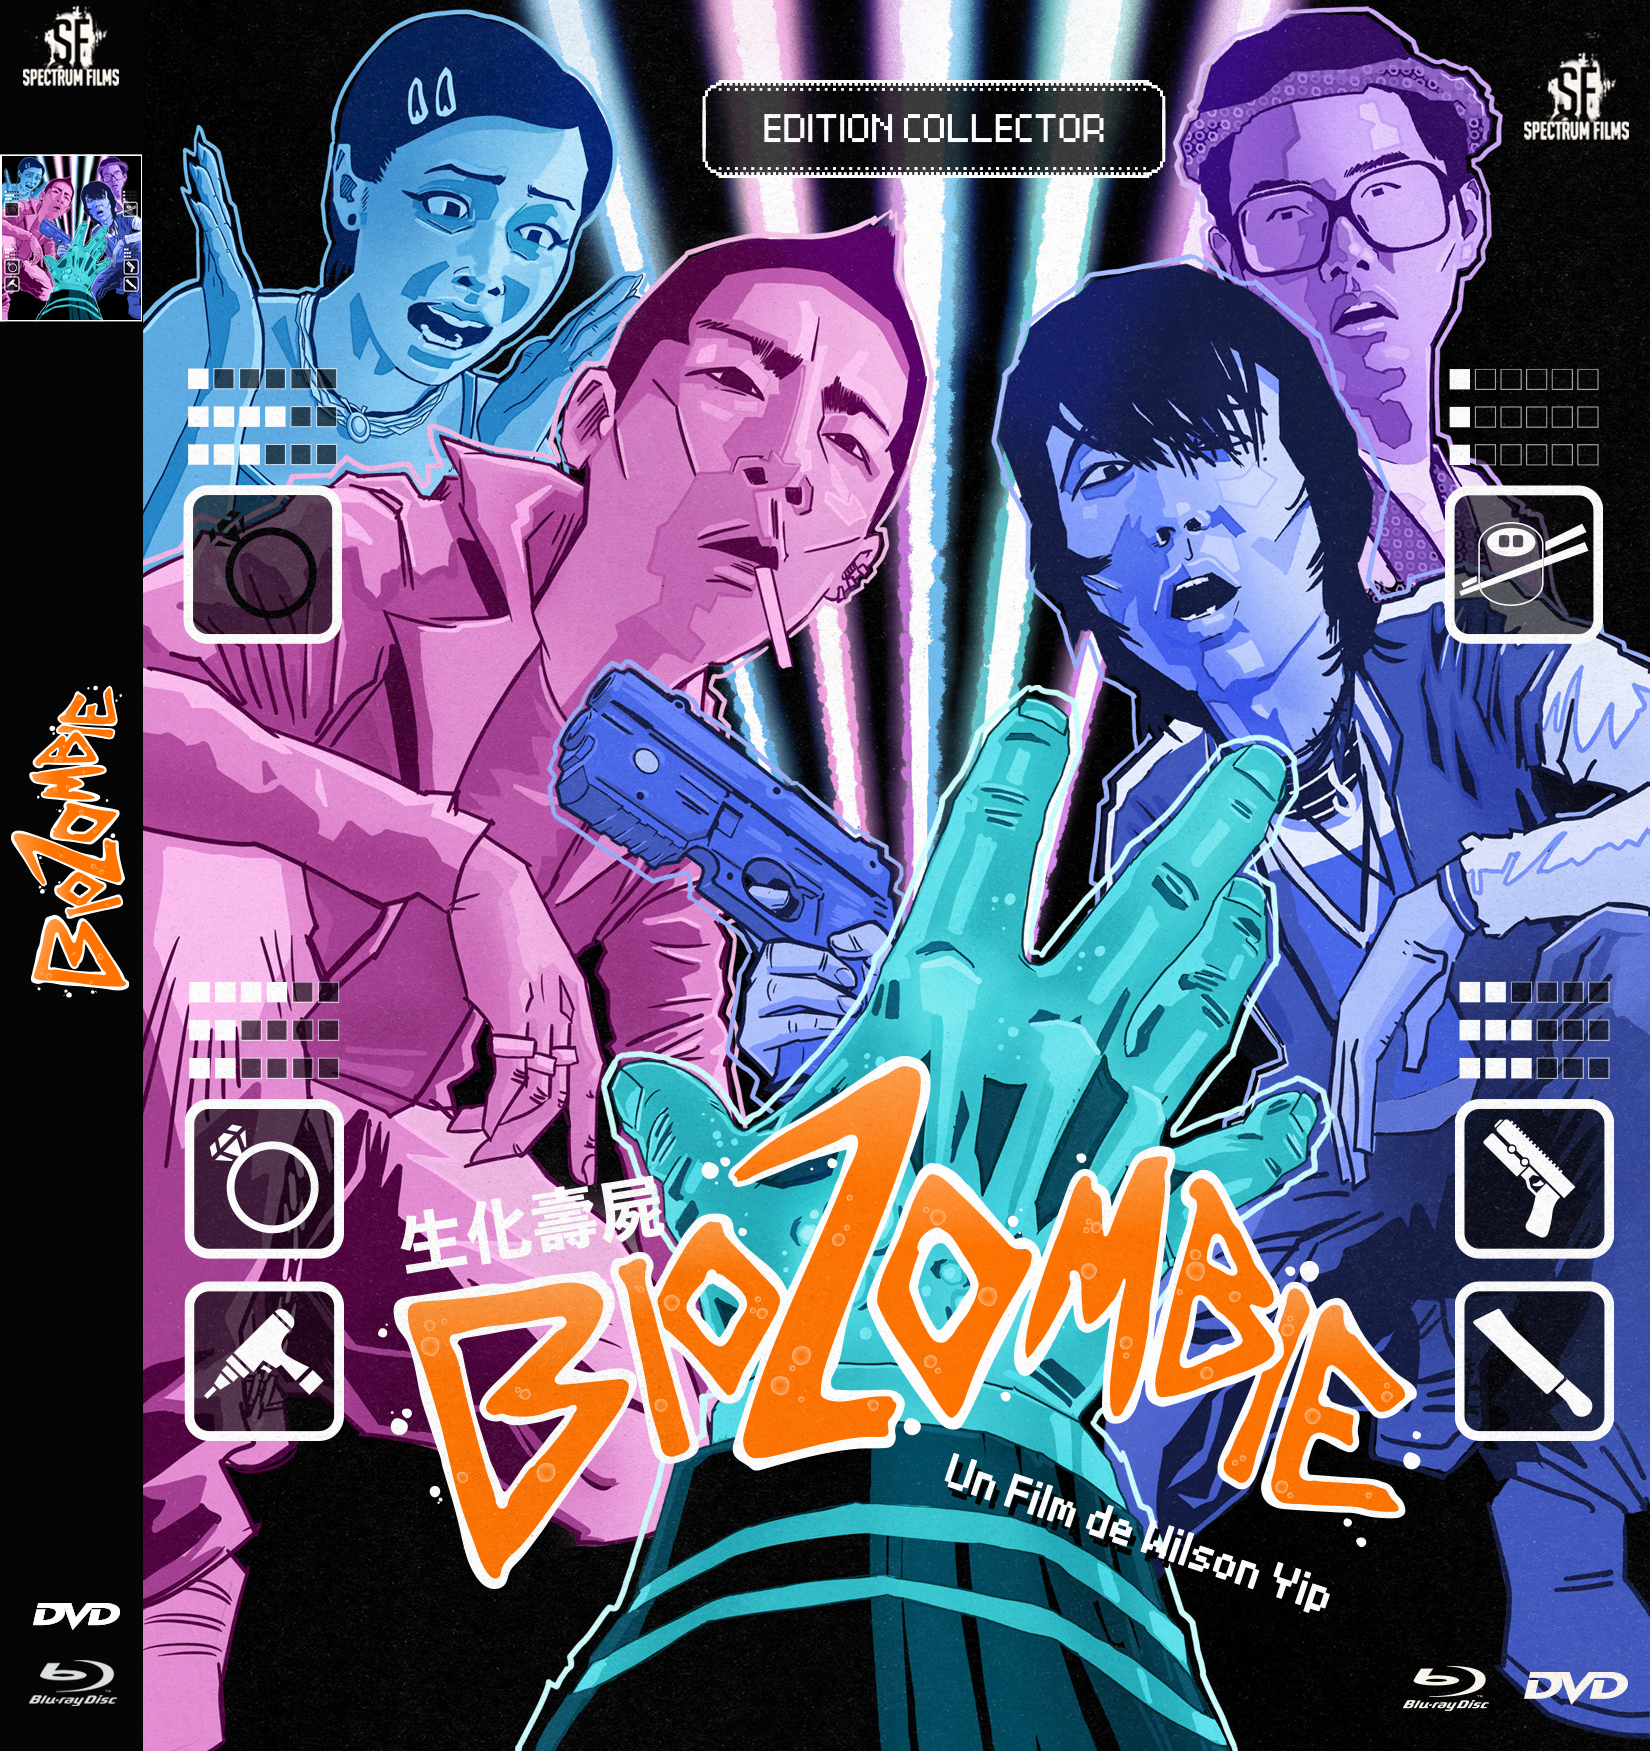 biozombie cover_spine final final